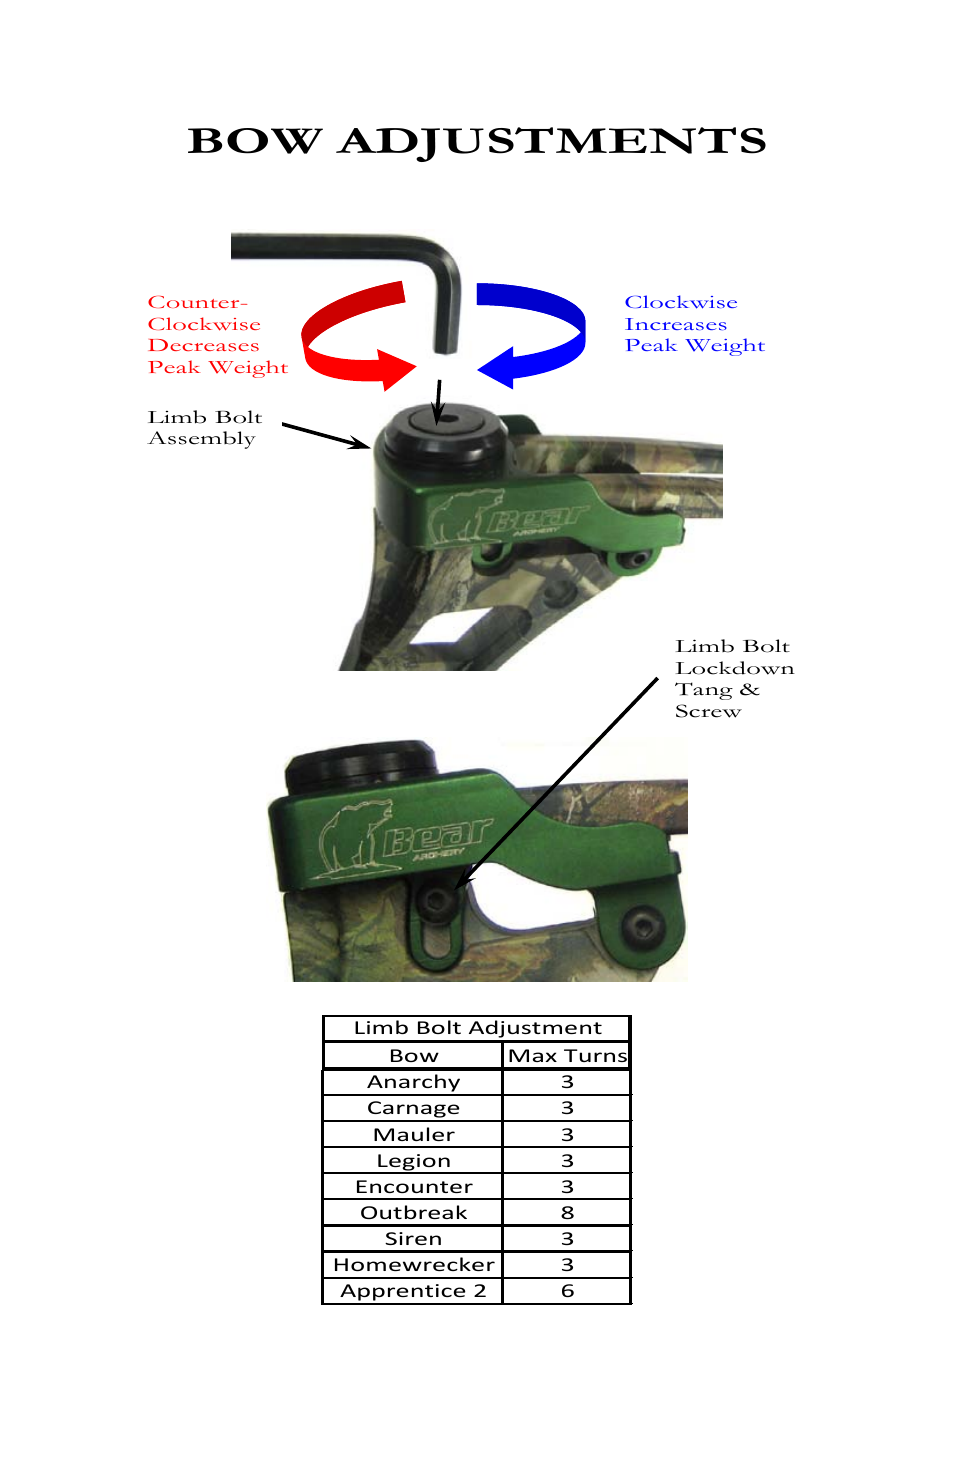 Bow adjustments | Bear Archery Compound Bow 2012 User Manual